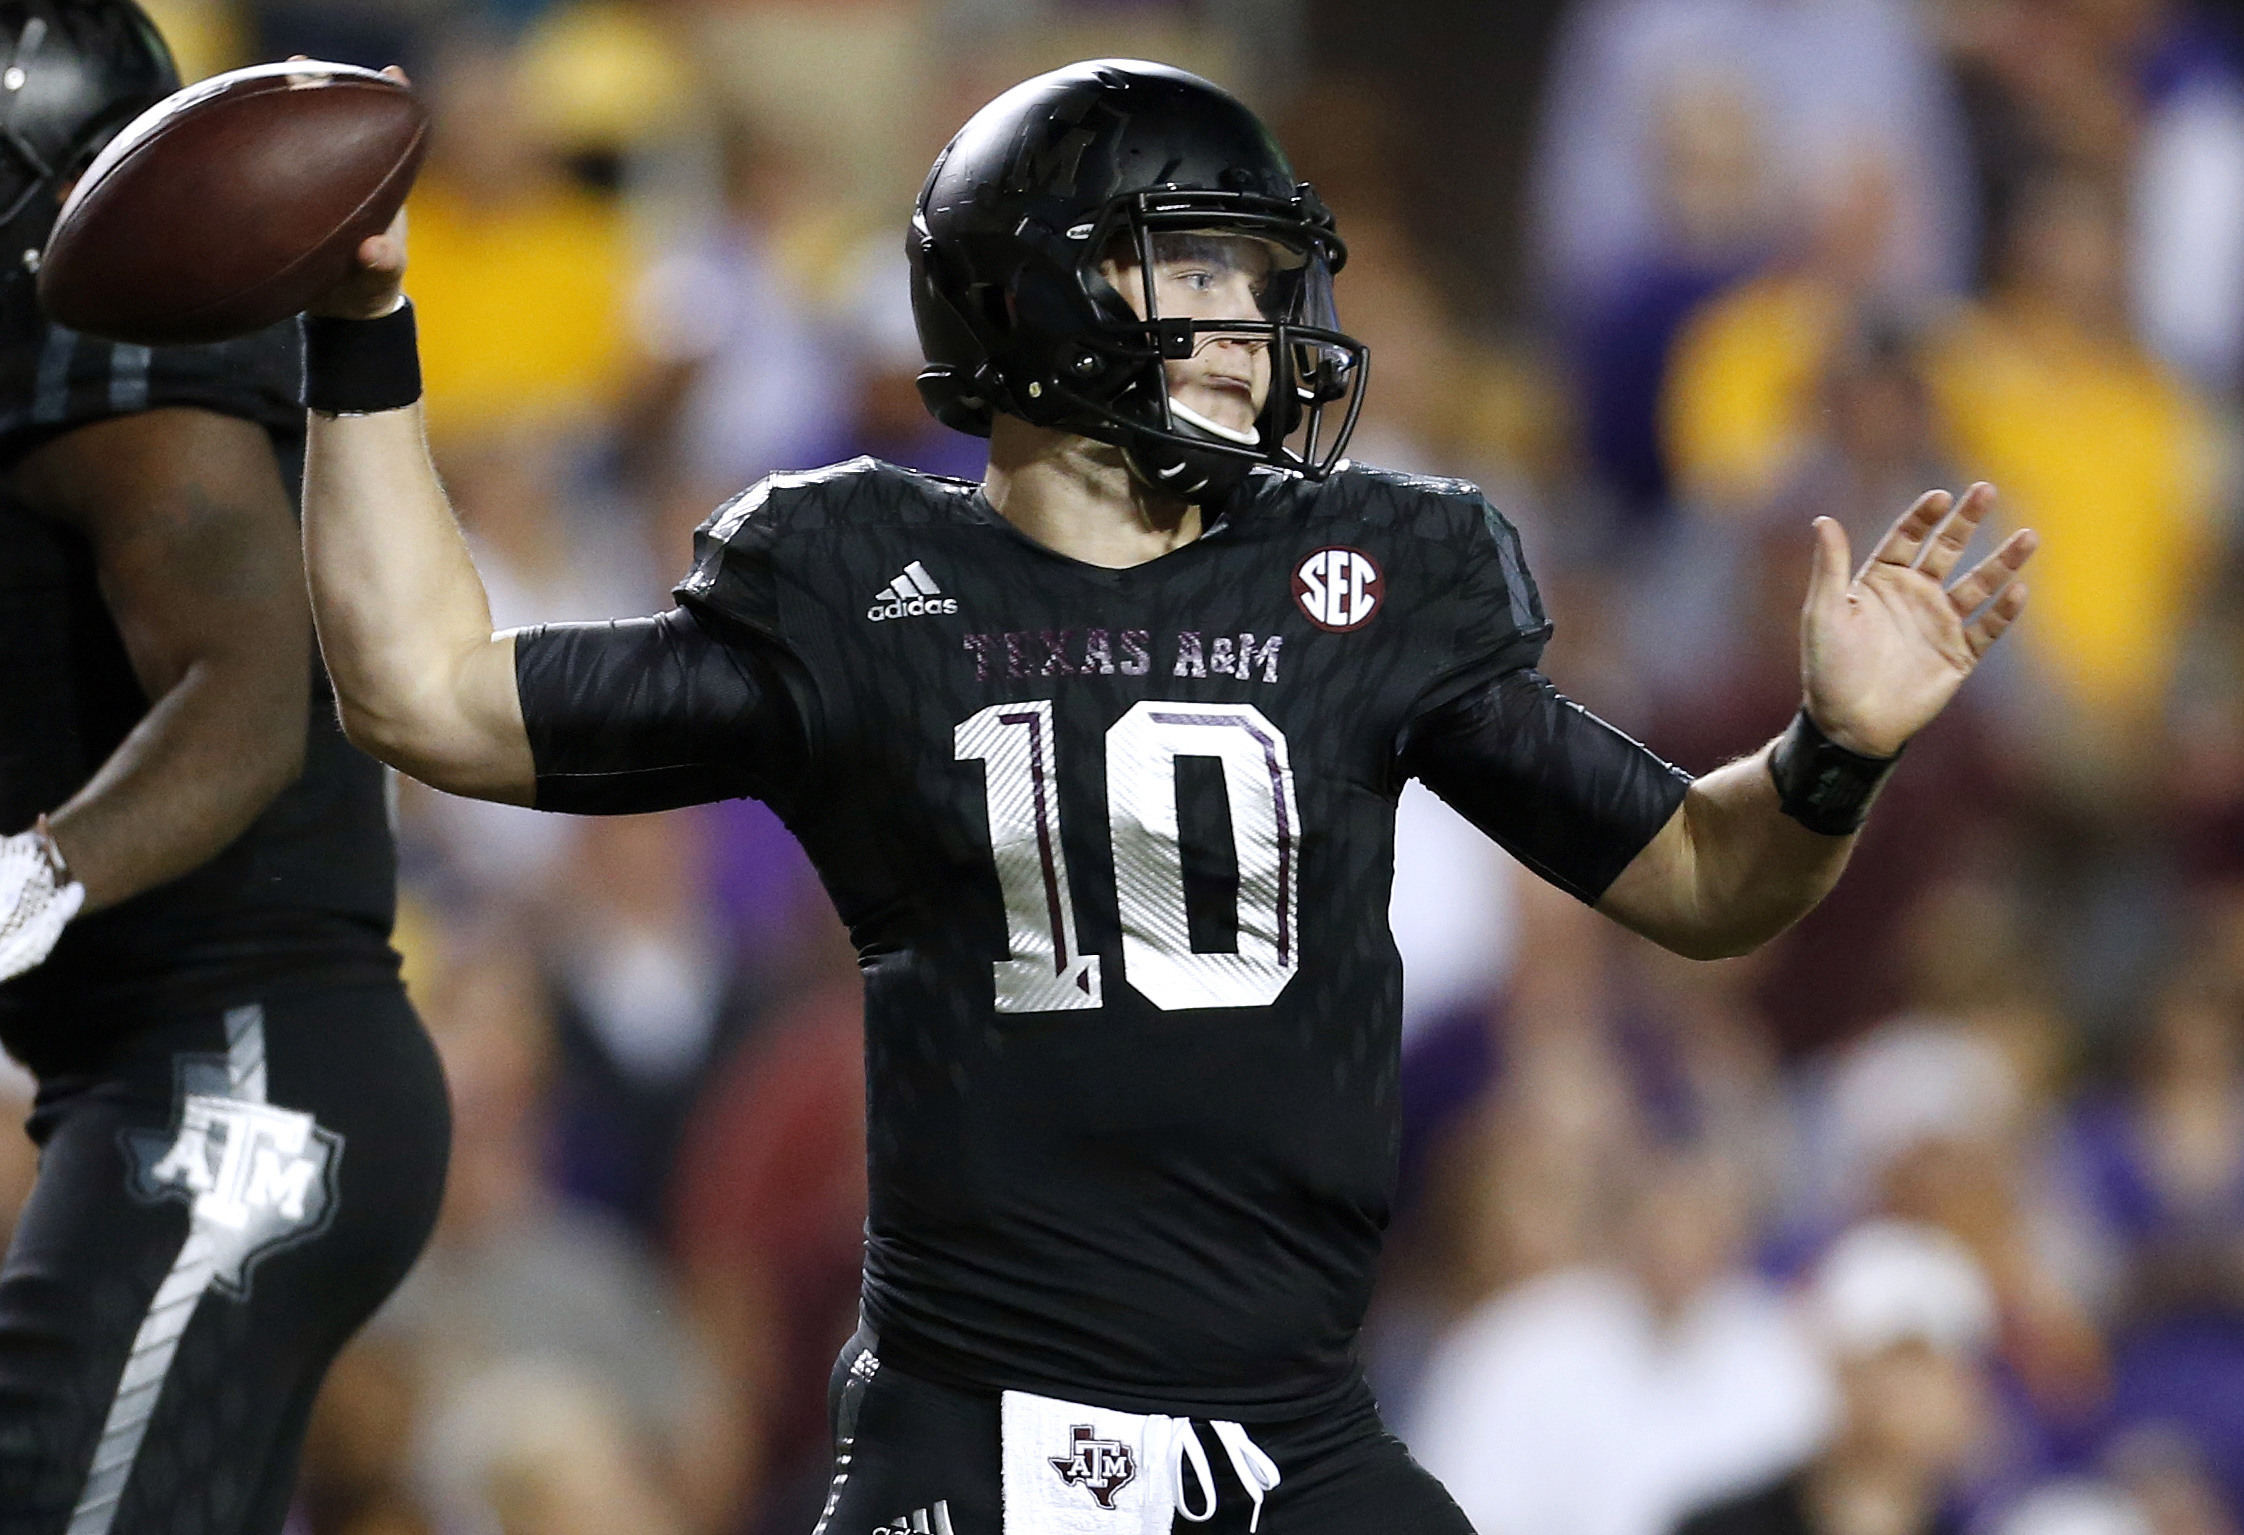 Texas A&M quarterback Kyle Allen (10) throws the ball during the second half of an NCAA college football game against LSU in Baton Rouge, La., Saturday, Nov. 28, 2015. LSU won 19-7. (AP Photo/Jonathan Bachman)